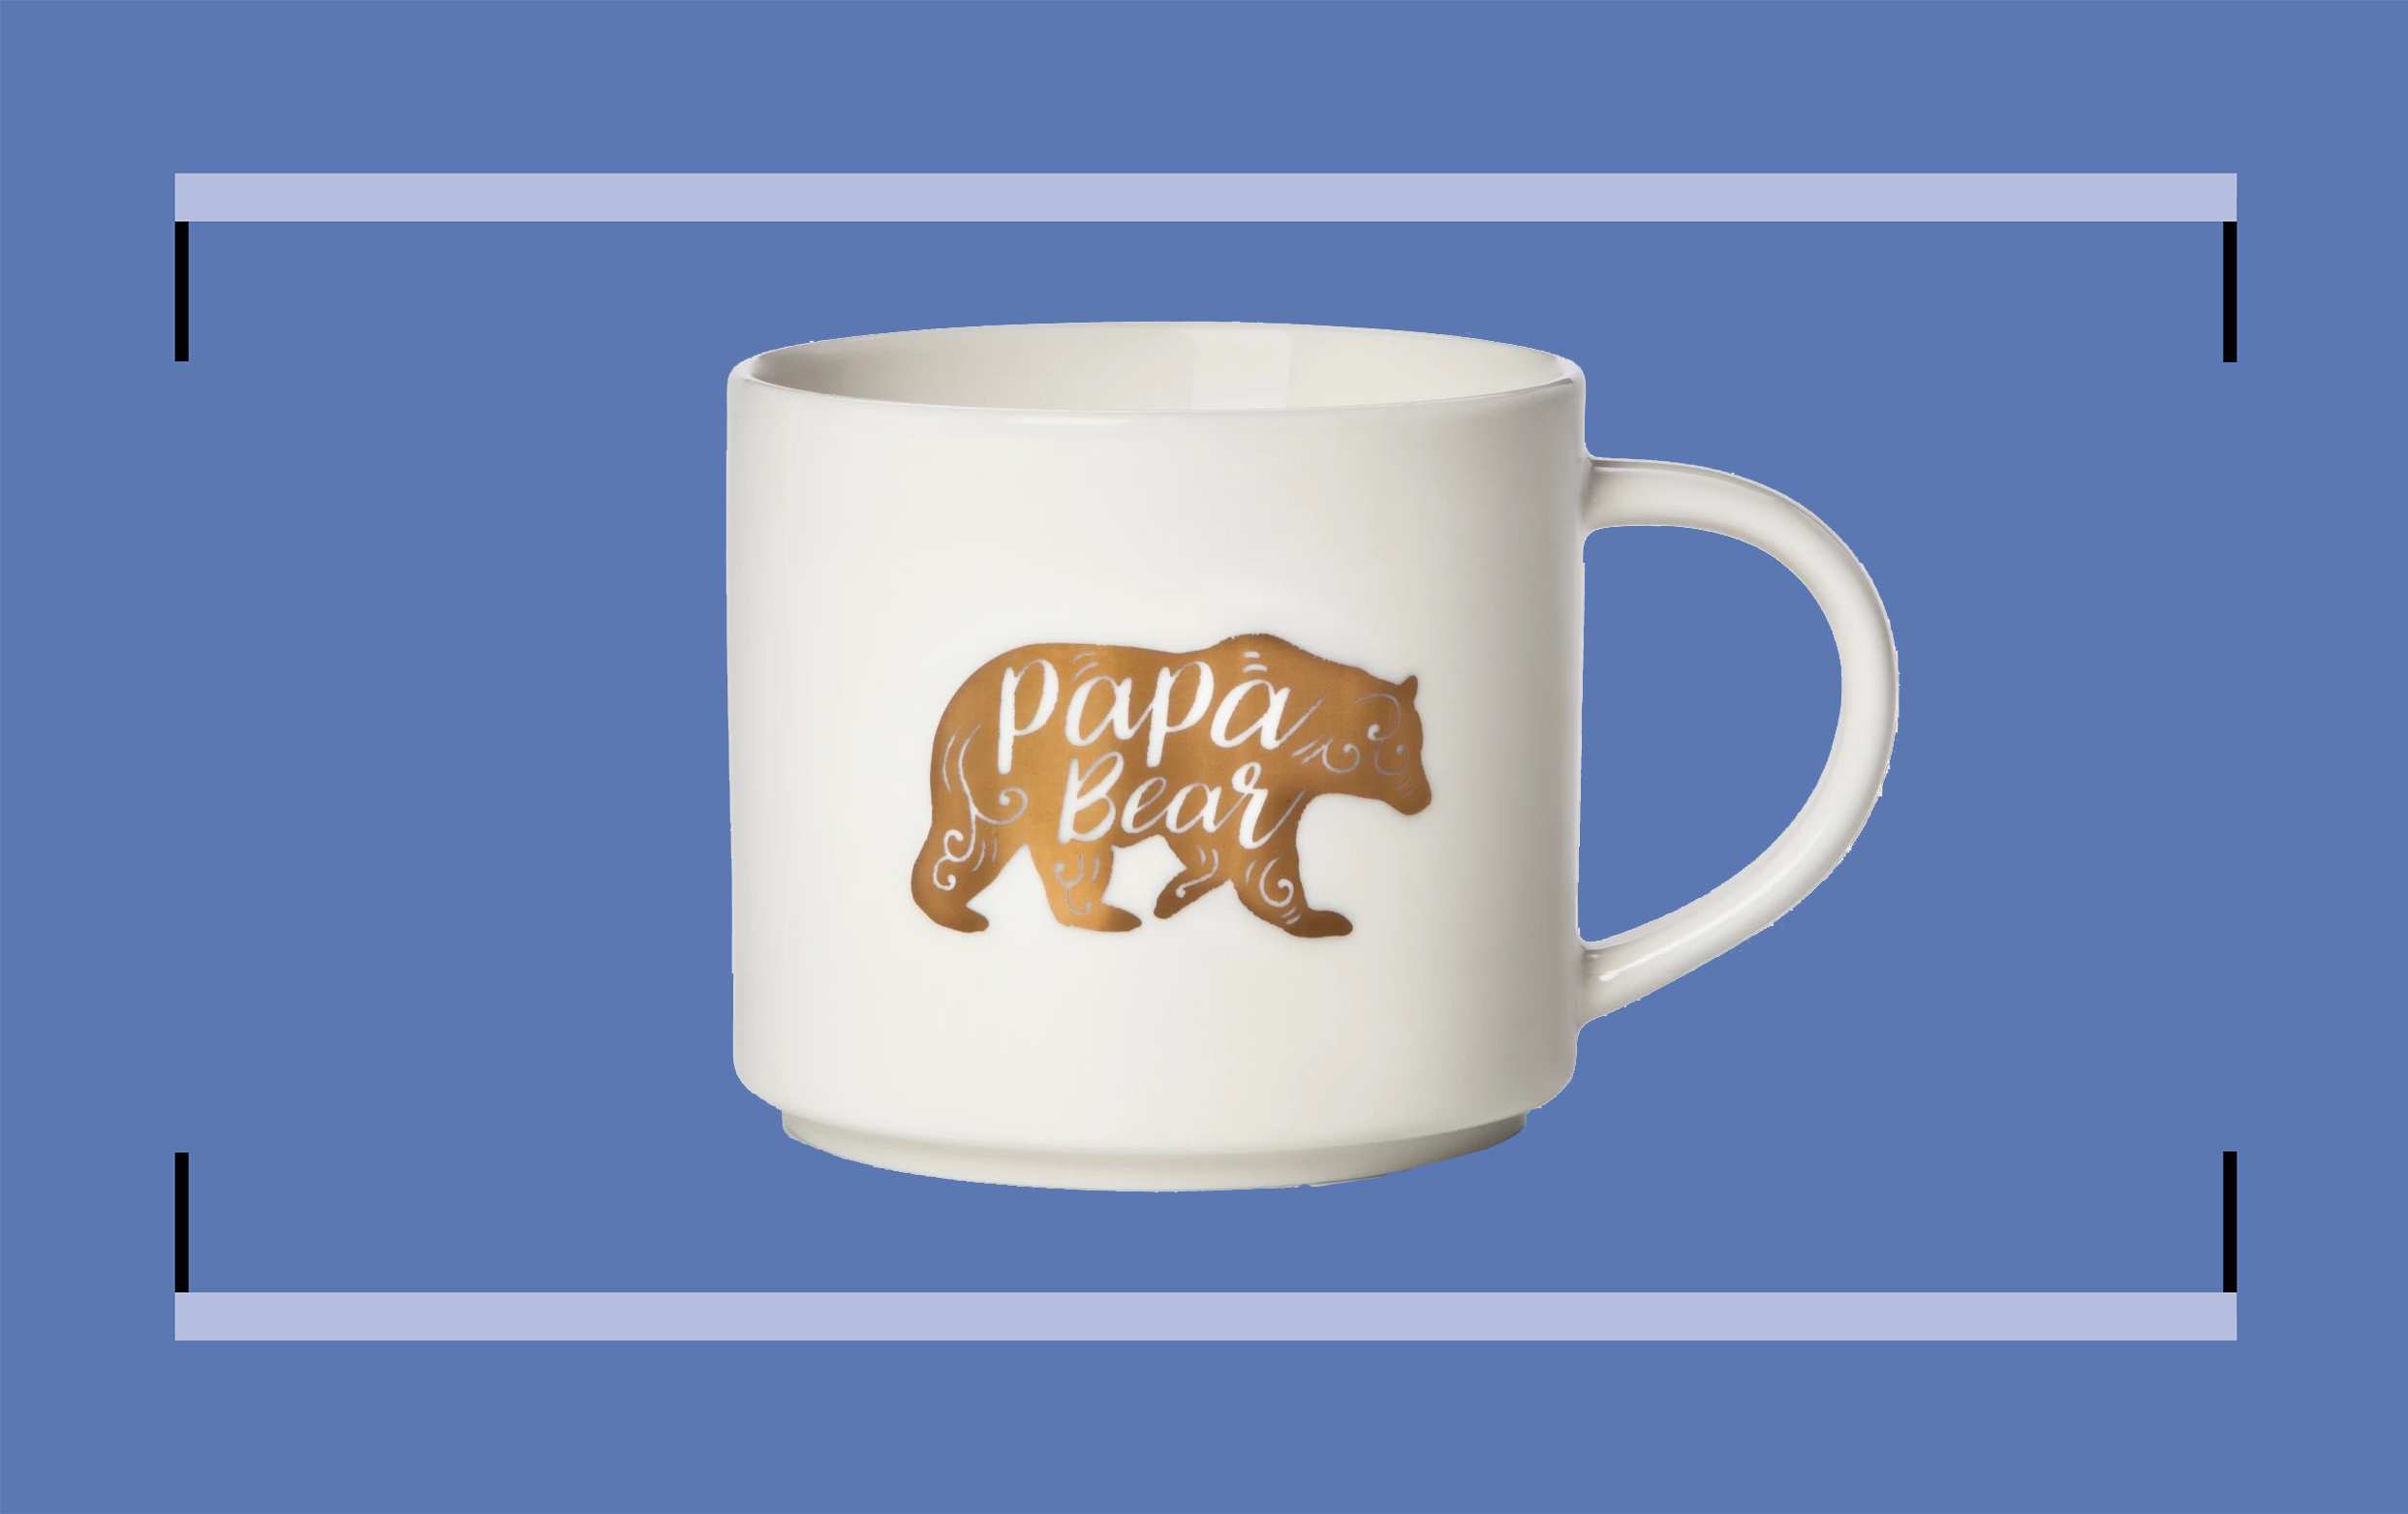 White mug with an image of a bear and the words 'papa bear'